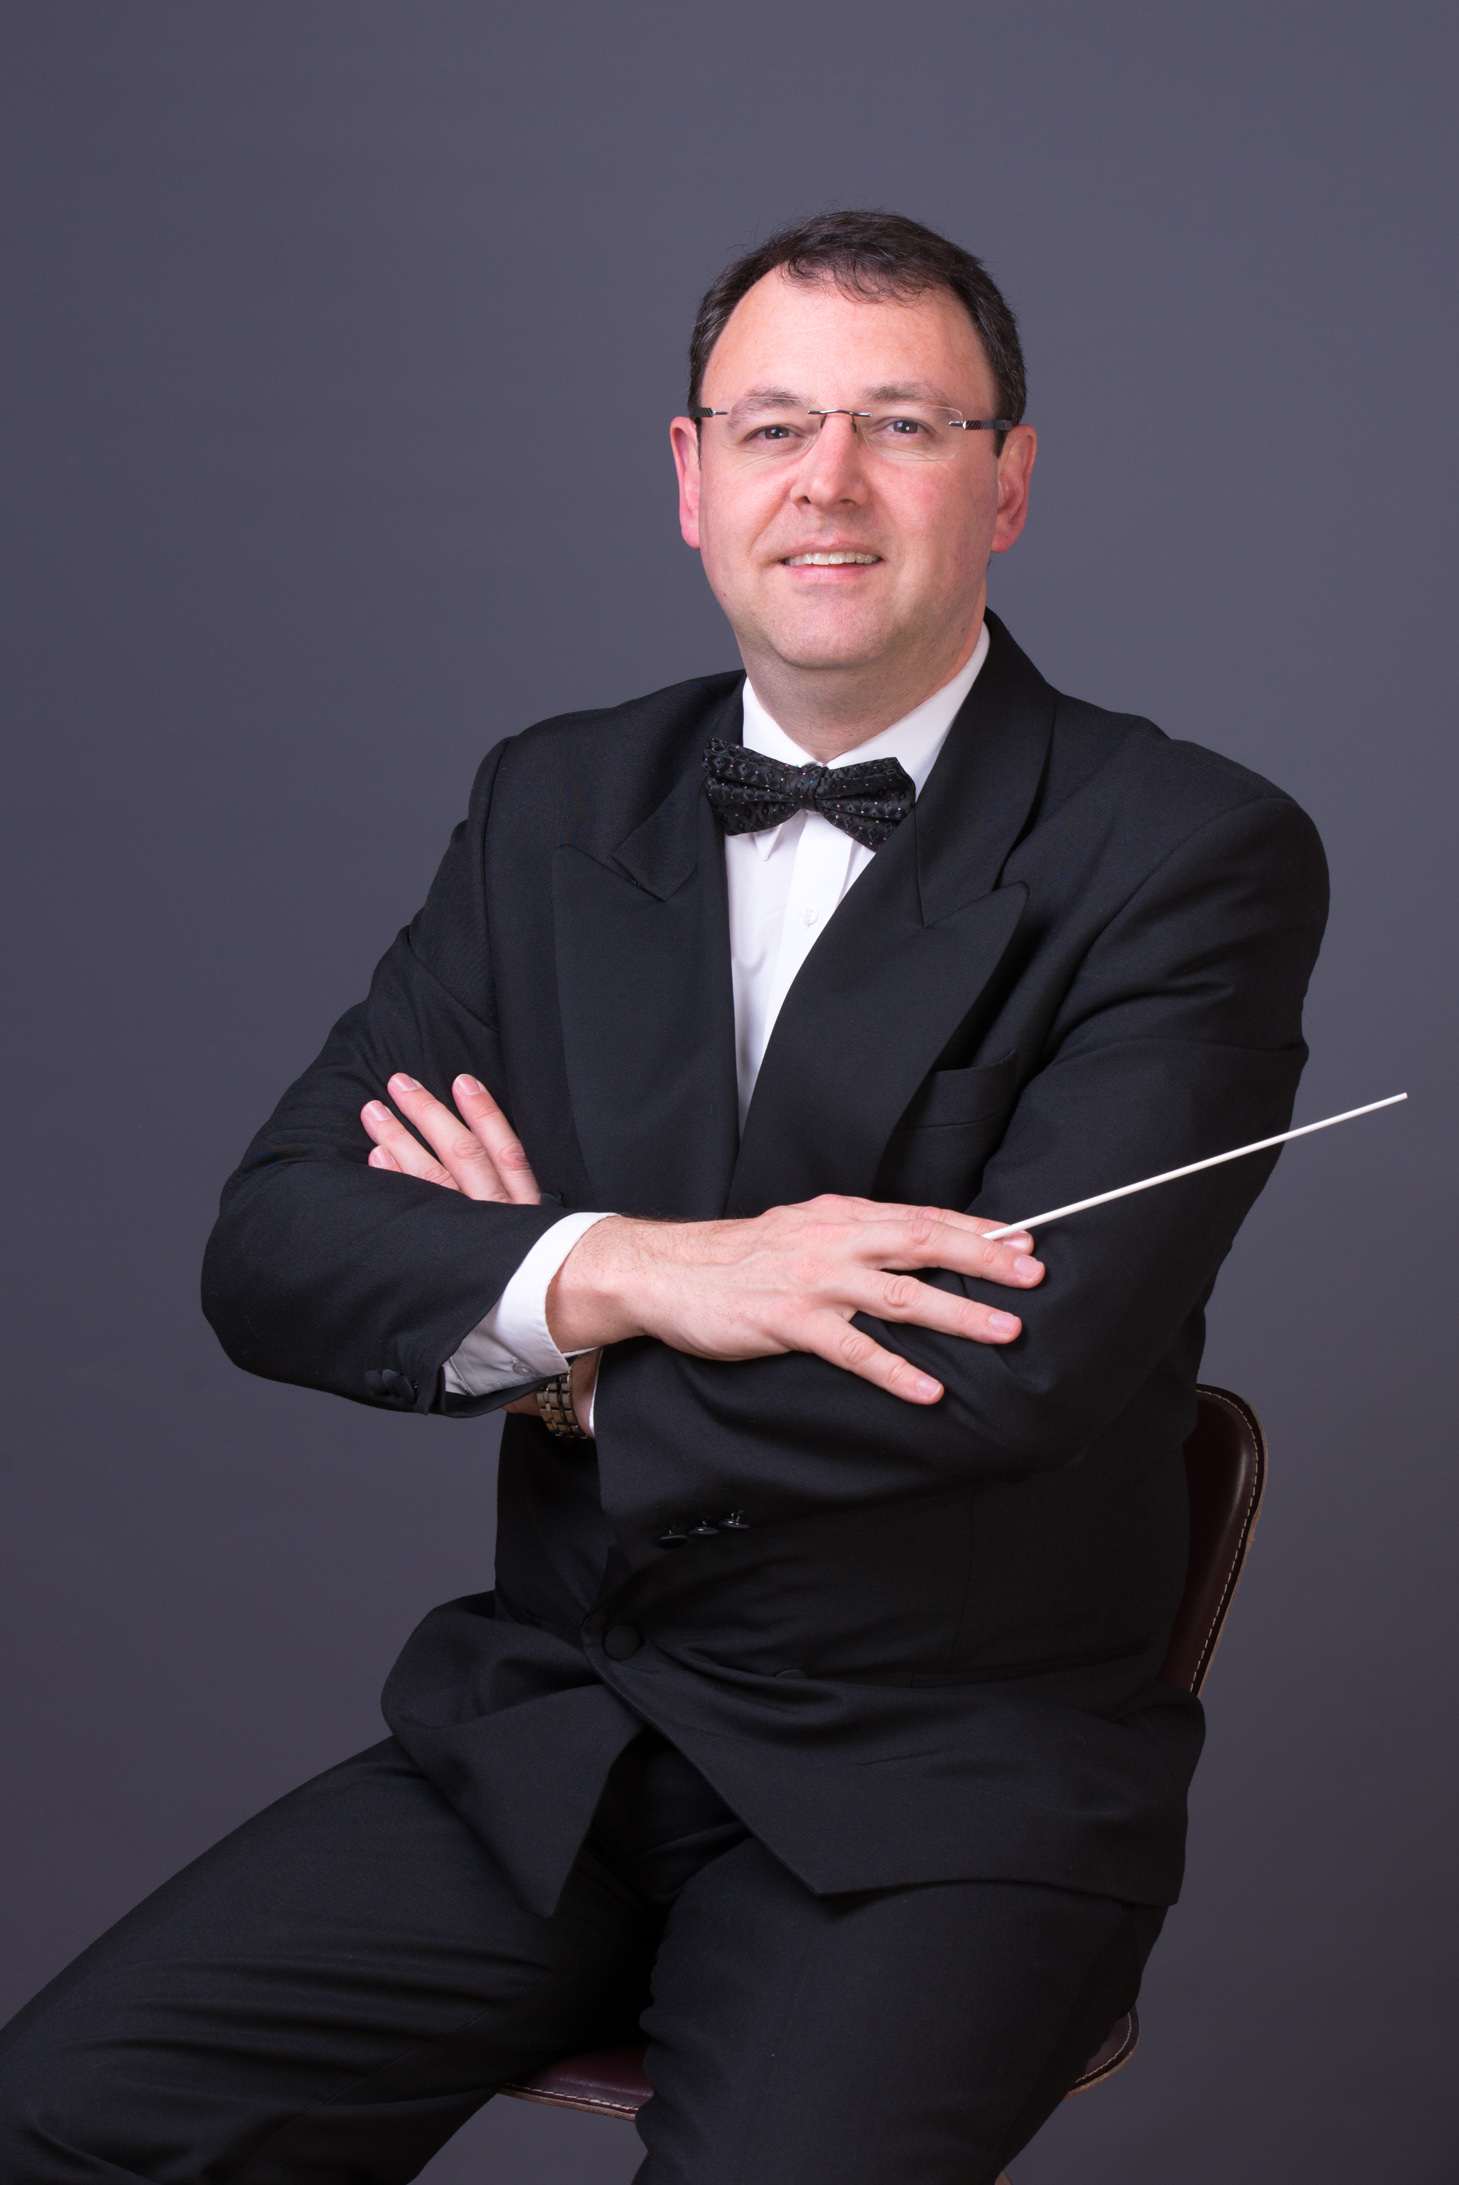 Conductor 1